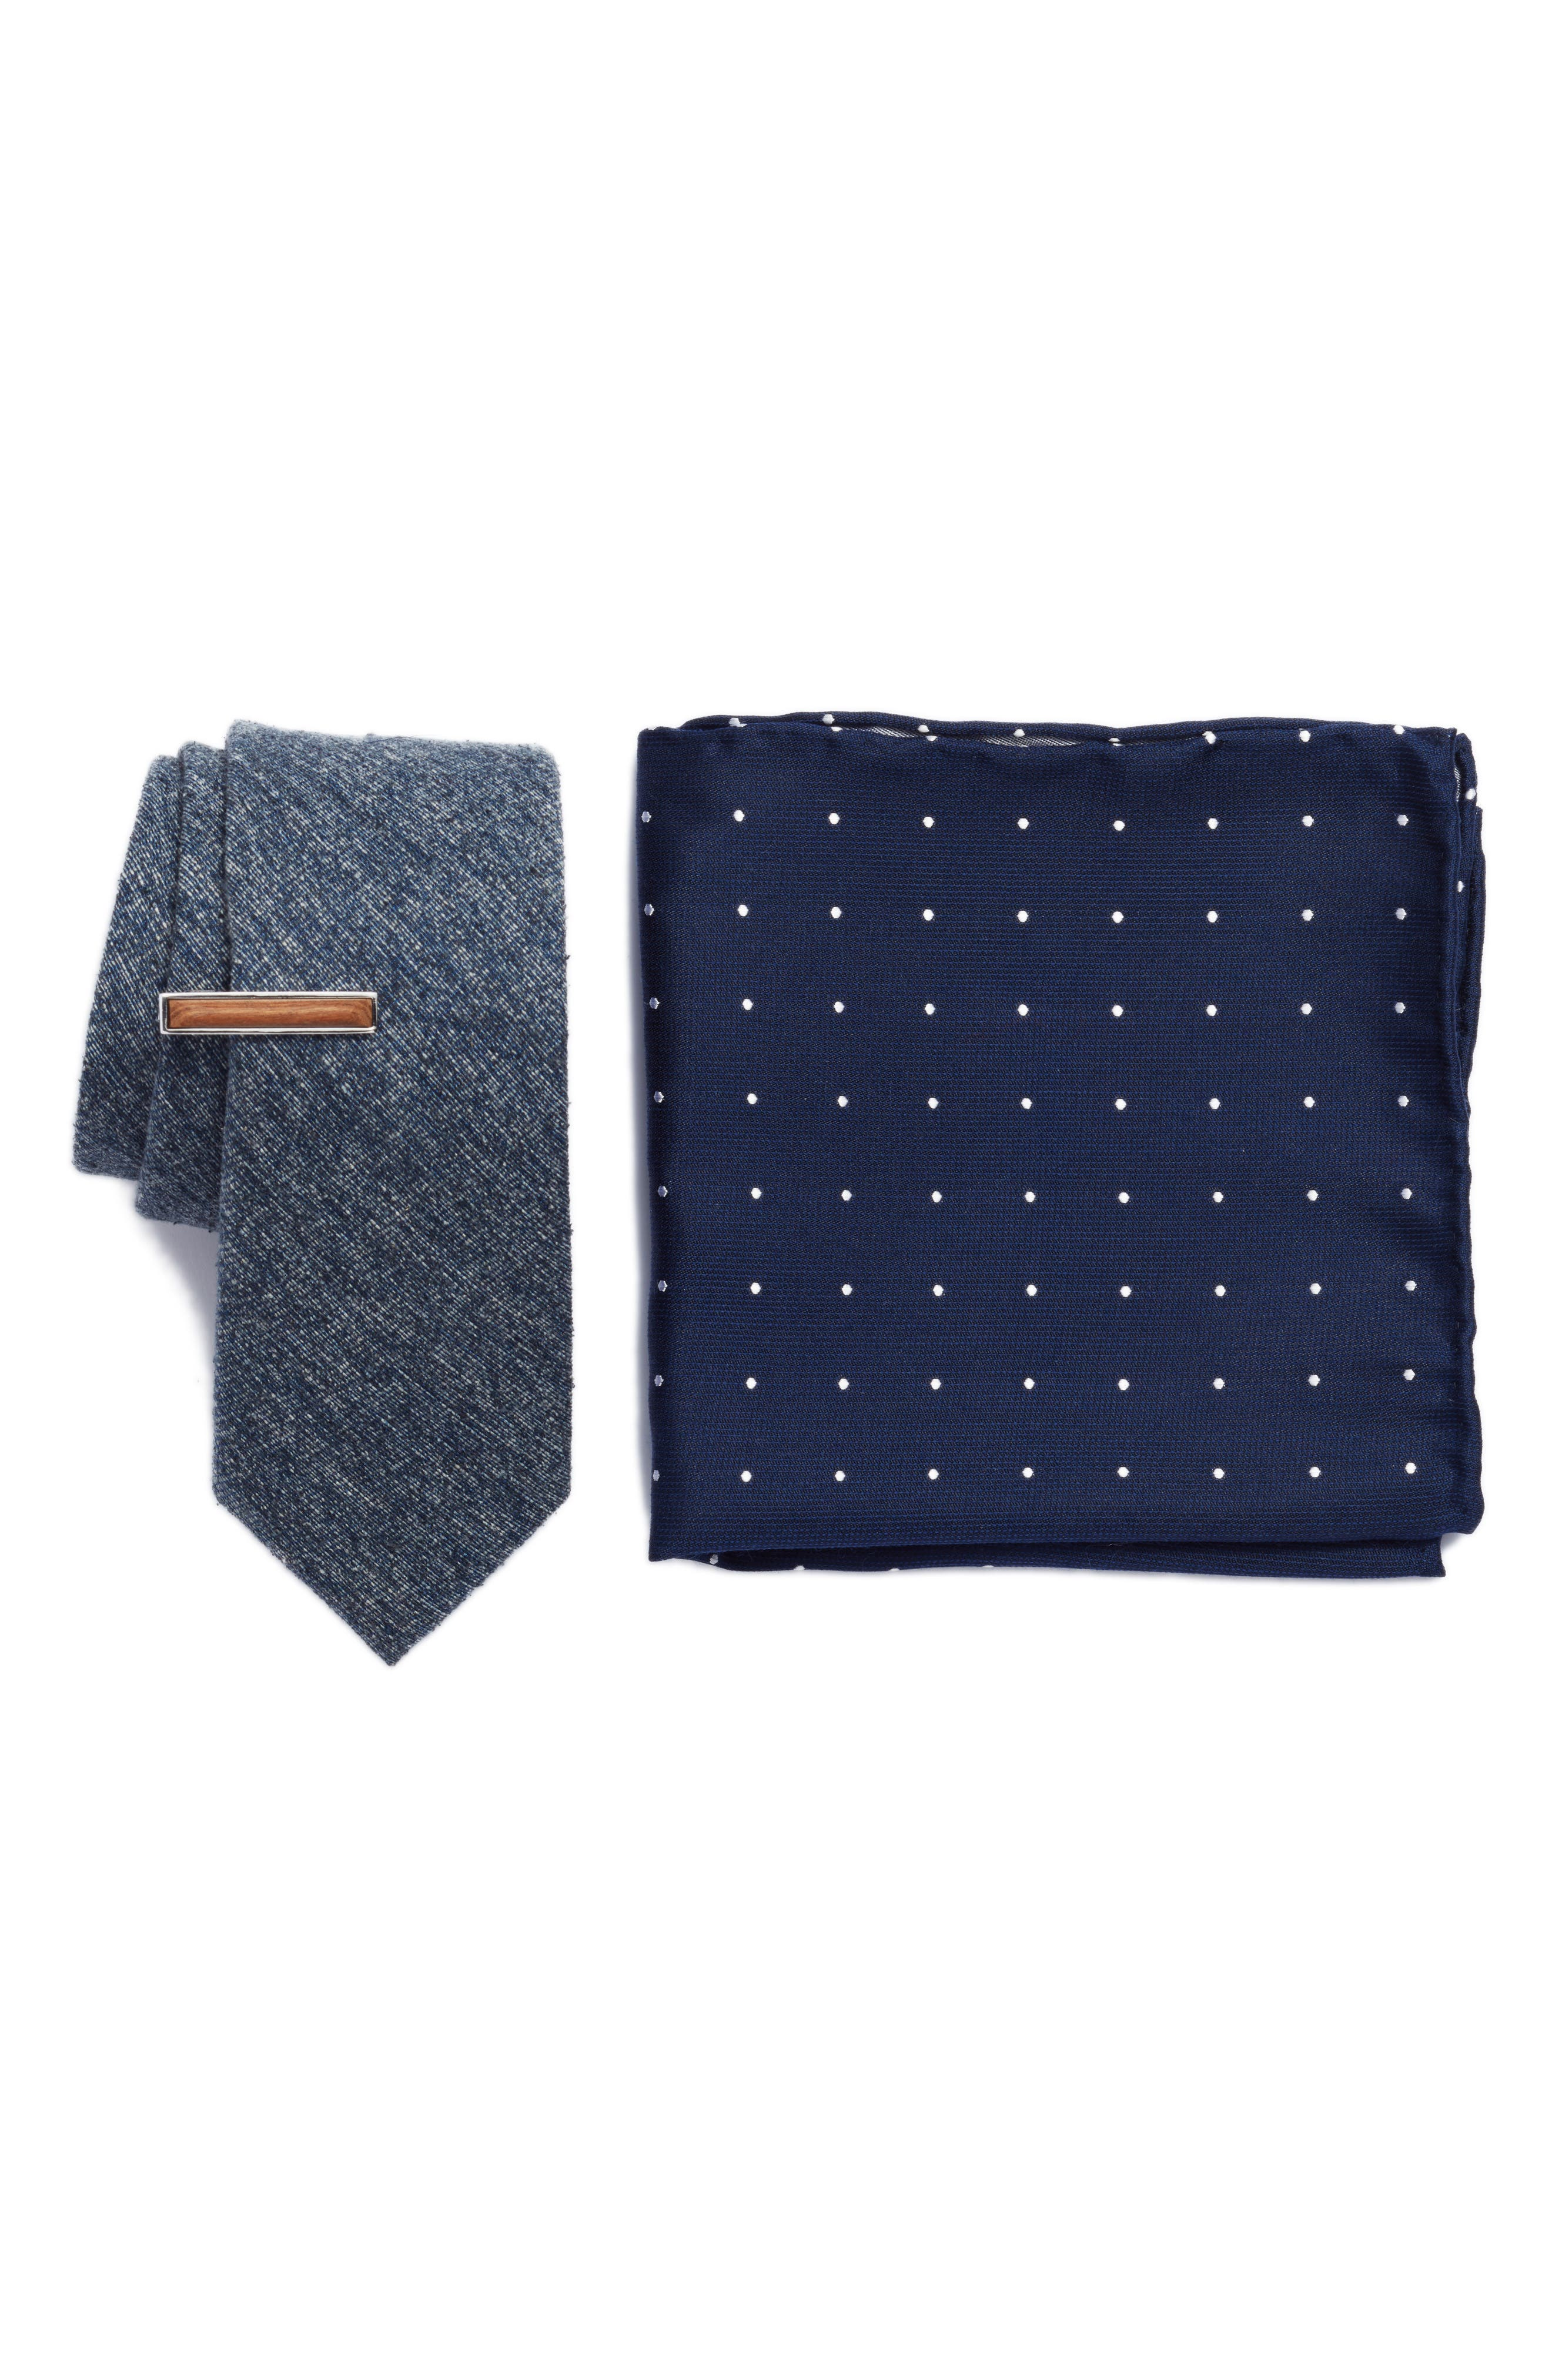 West Ridge Solid 3-Piece Skinny Tie Style Box,                         Main,                         color, Navy